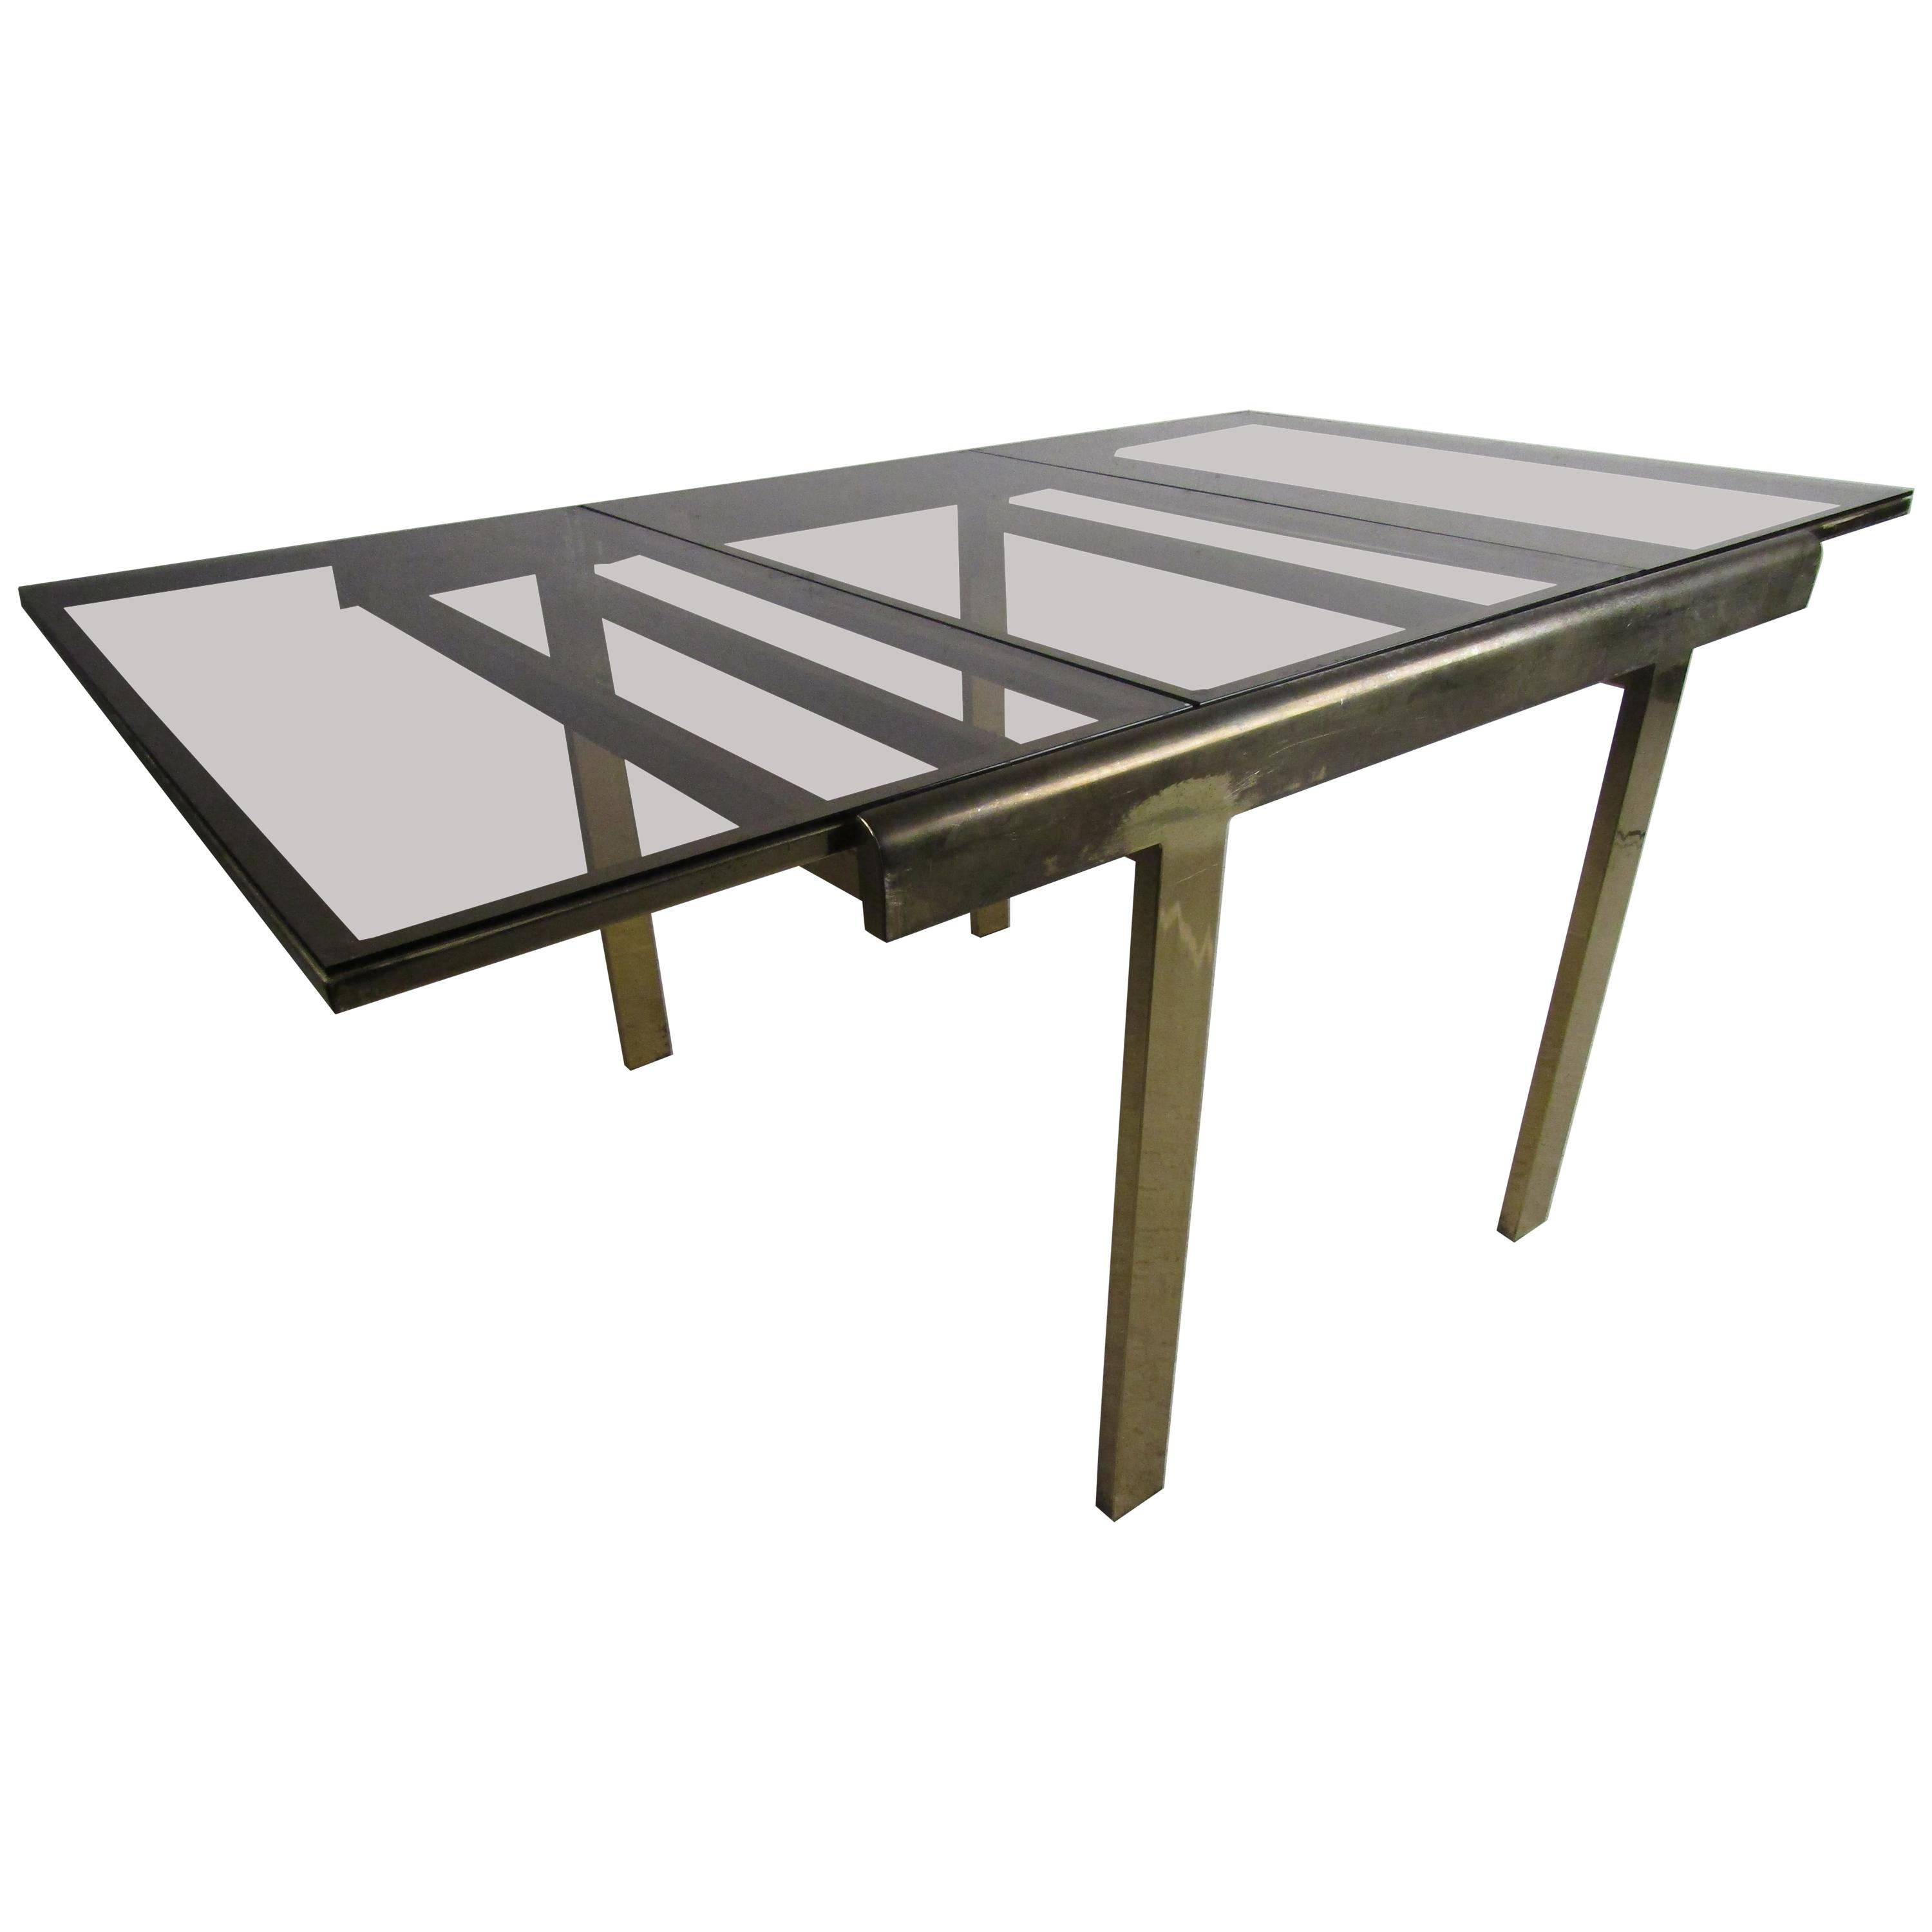 Mid-Century Modern Expanding Brass Dining Table with a Smoked Glass Top